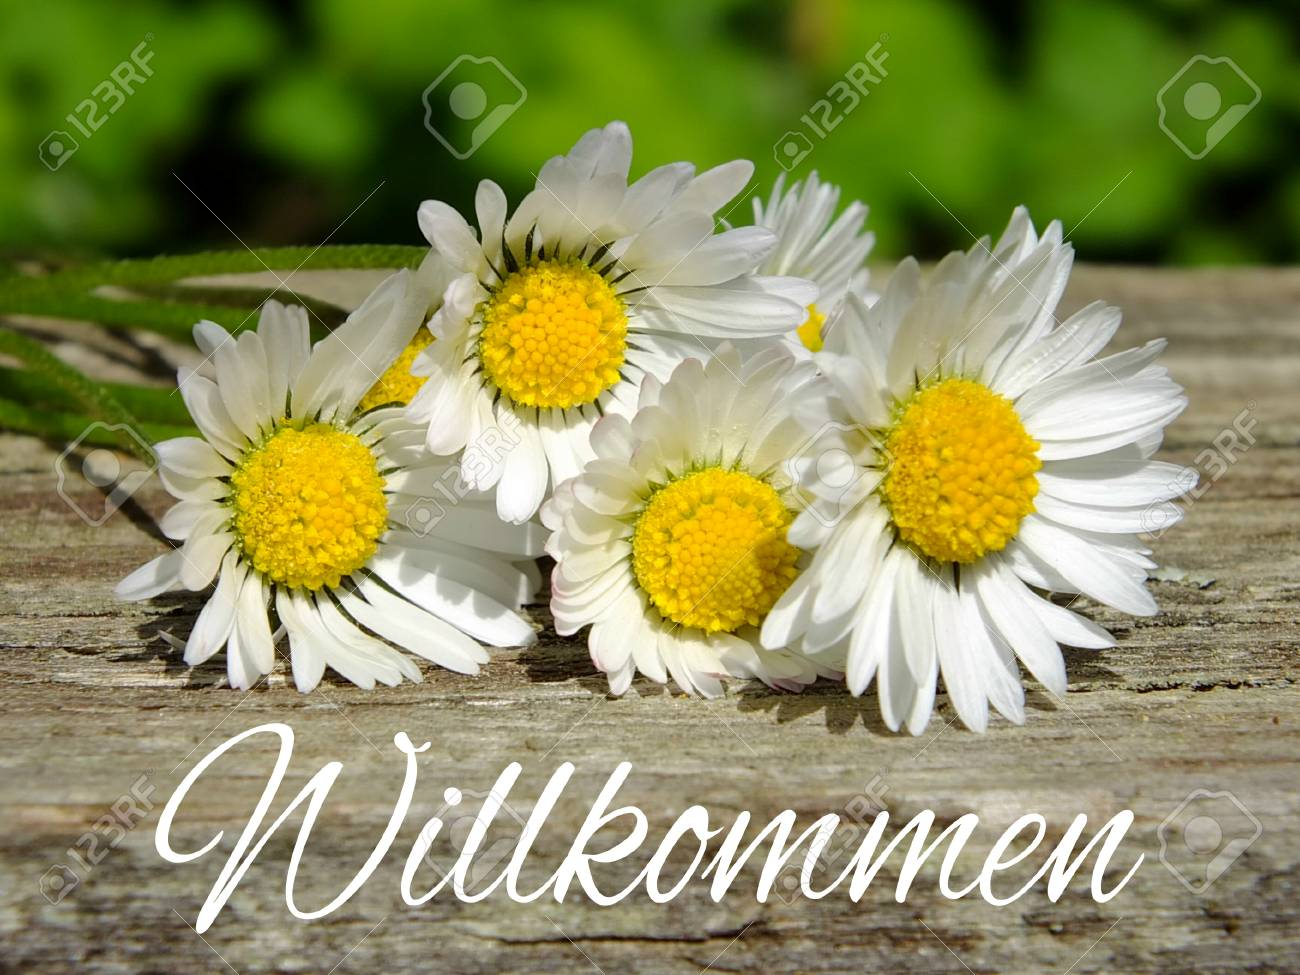 Image of daisies with German lettering Standard-Bild - 35059449